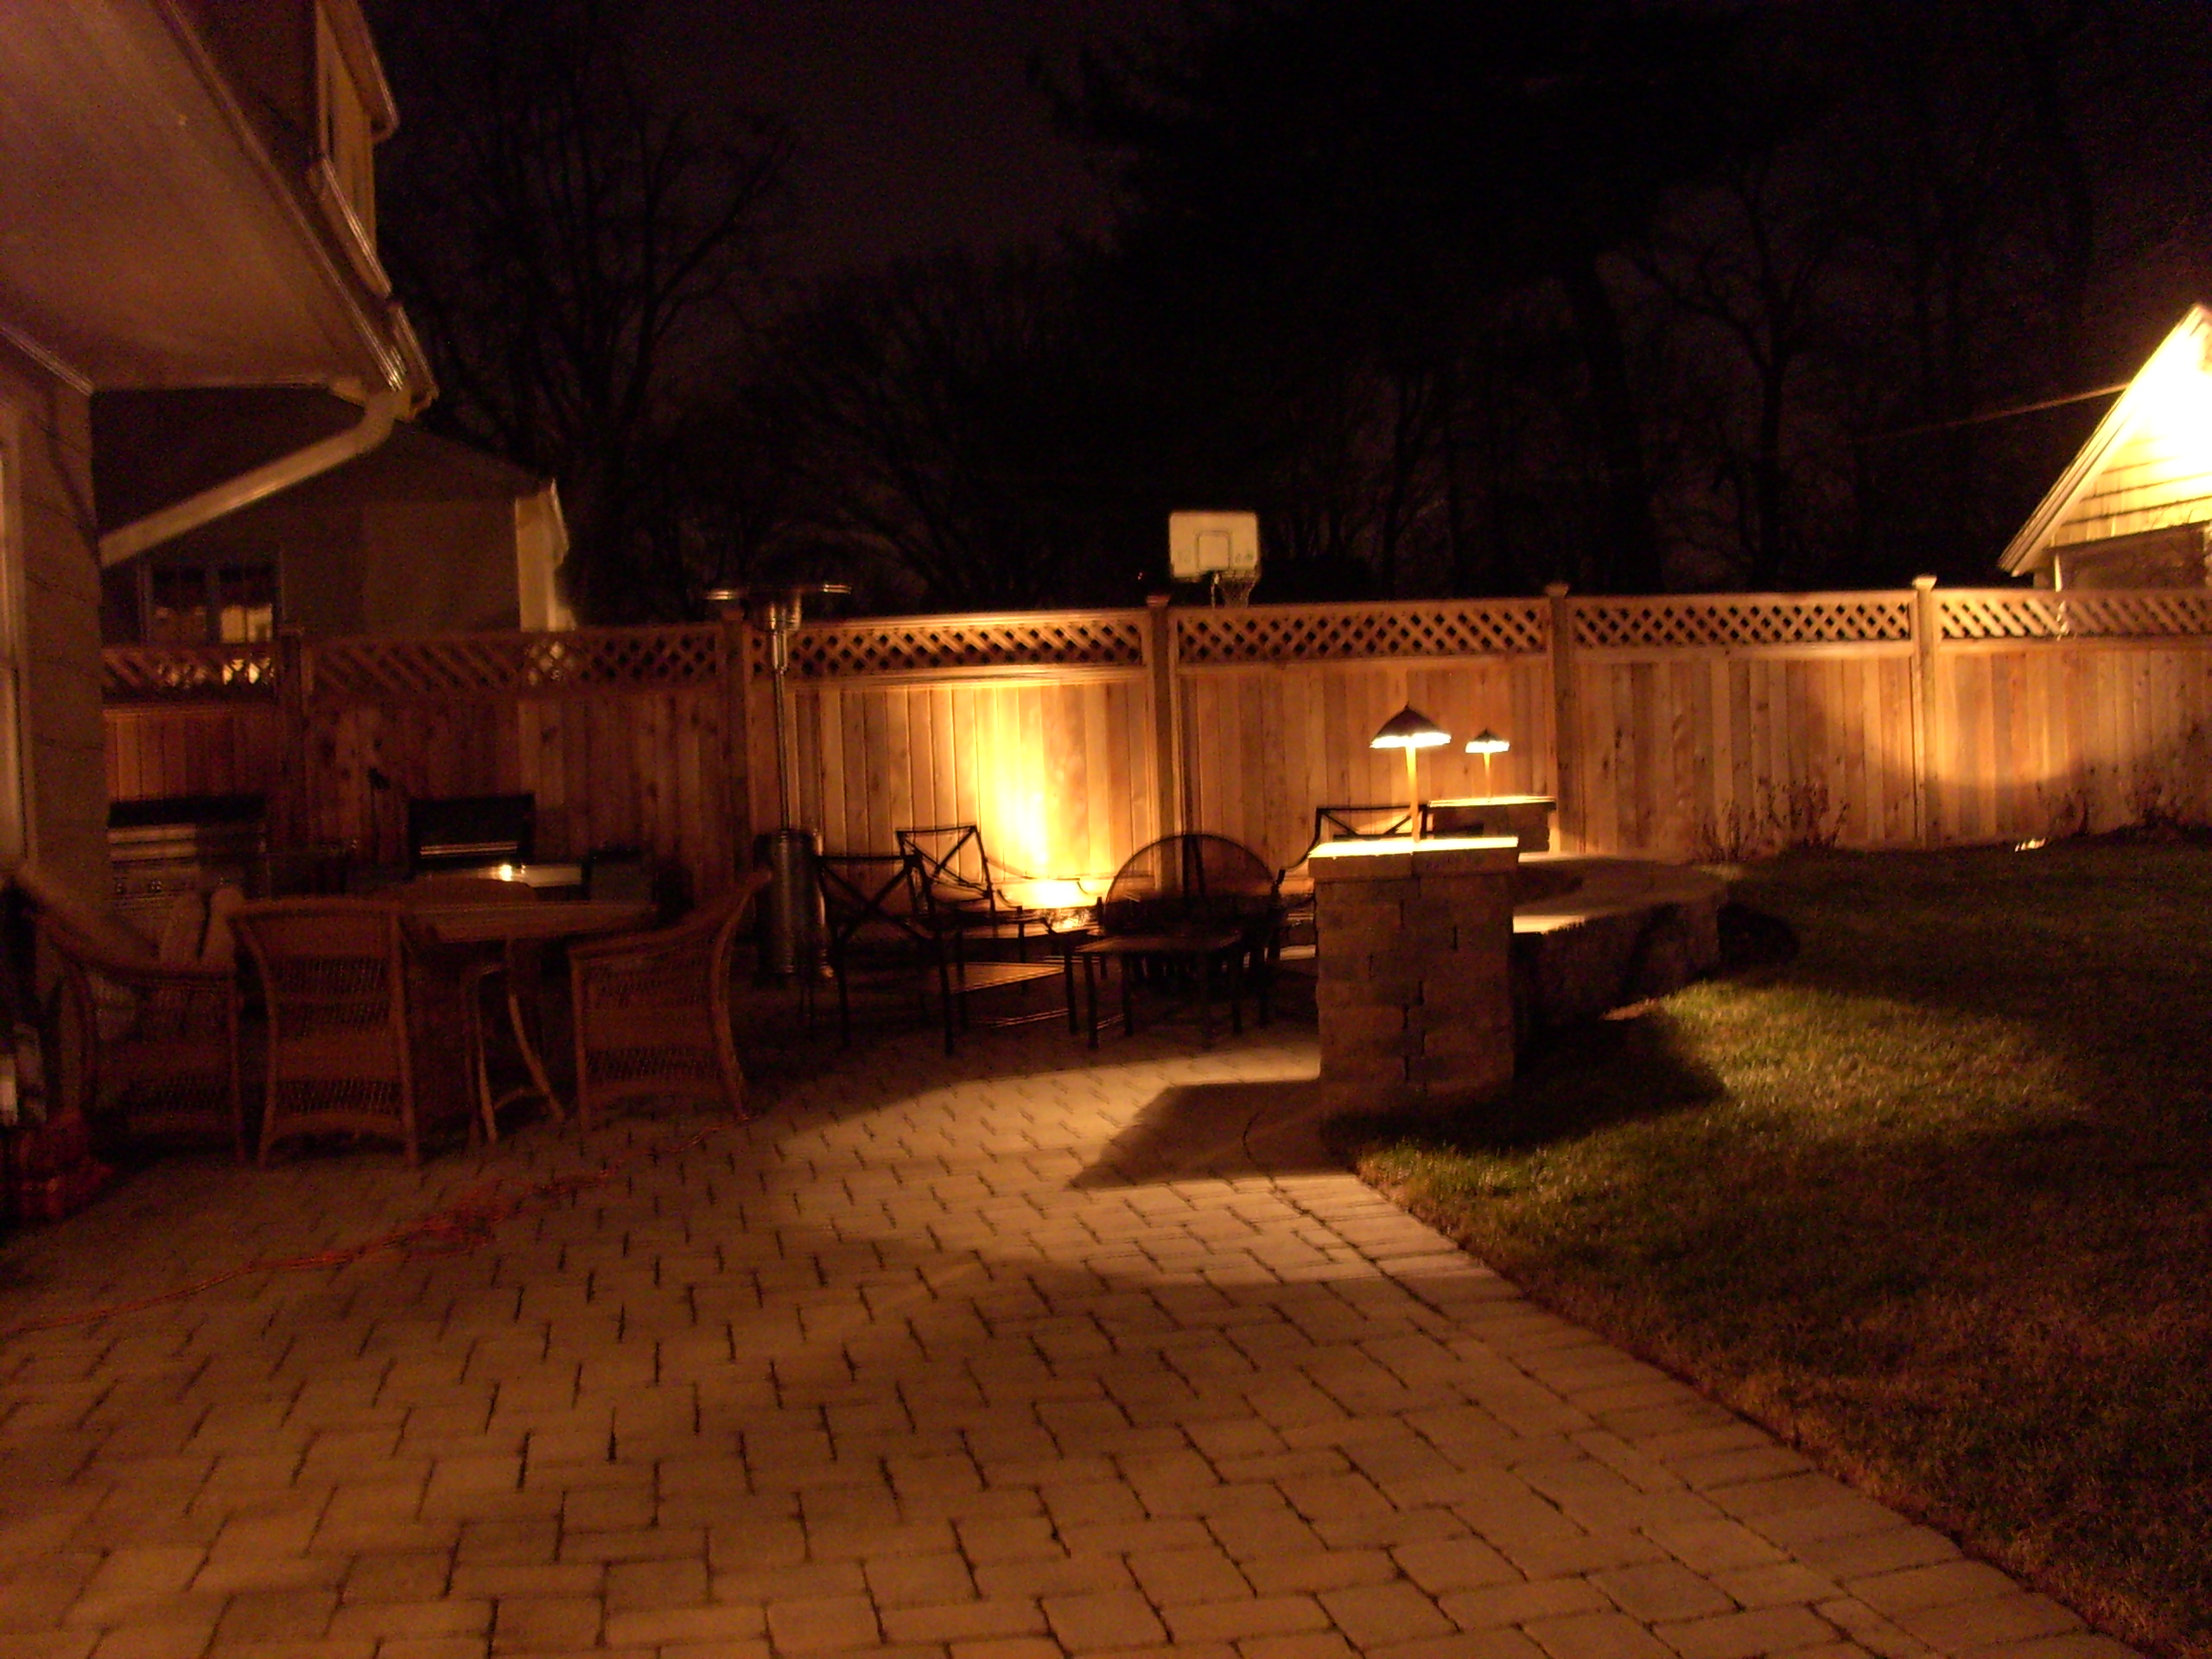 Backyard Lights On Fence : this beautiful patio and privacy fence The landscaping and lighting